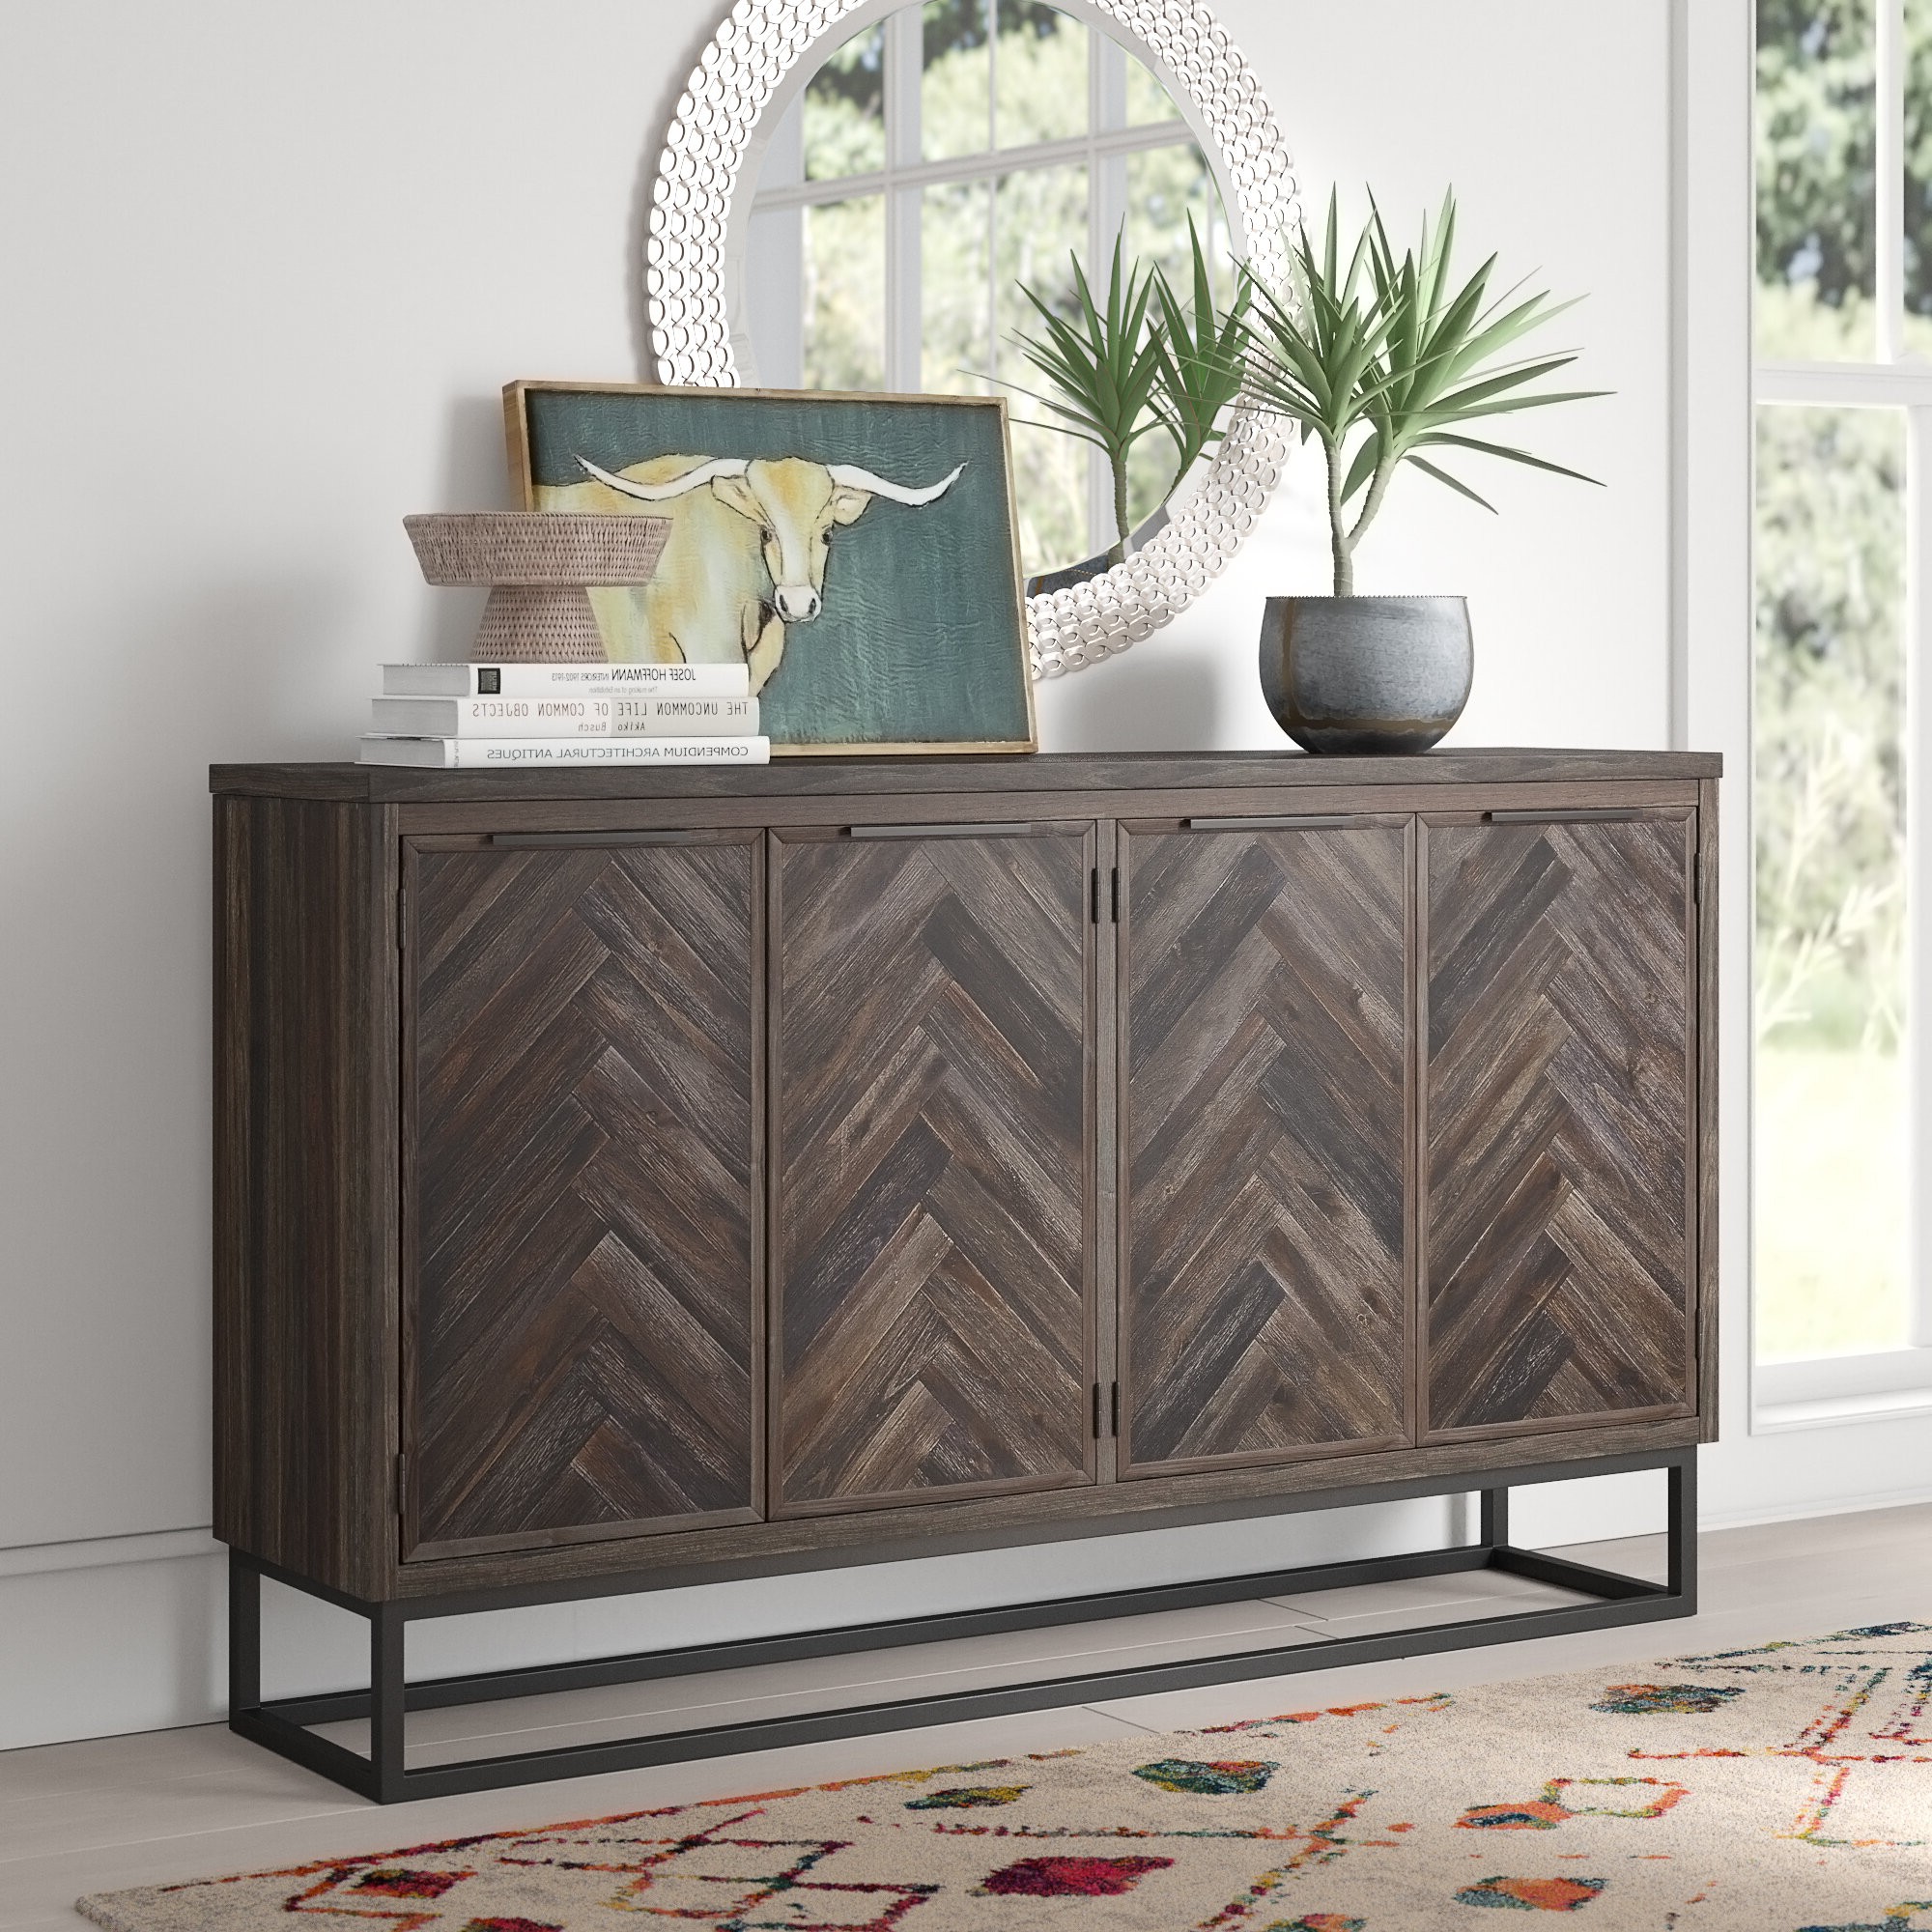 Mistana Kaelyn Credenza Intended For Candide Wood Credenzas (View 6 of 20)